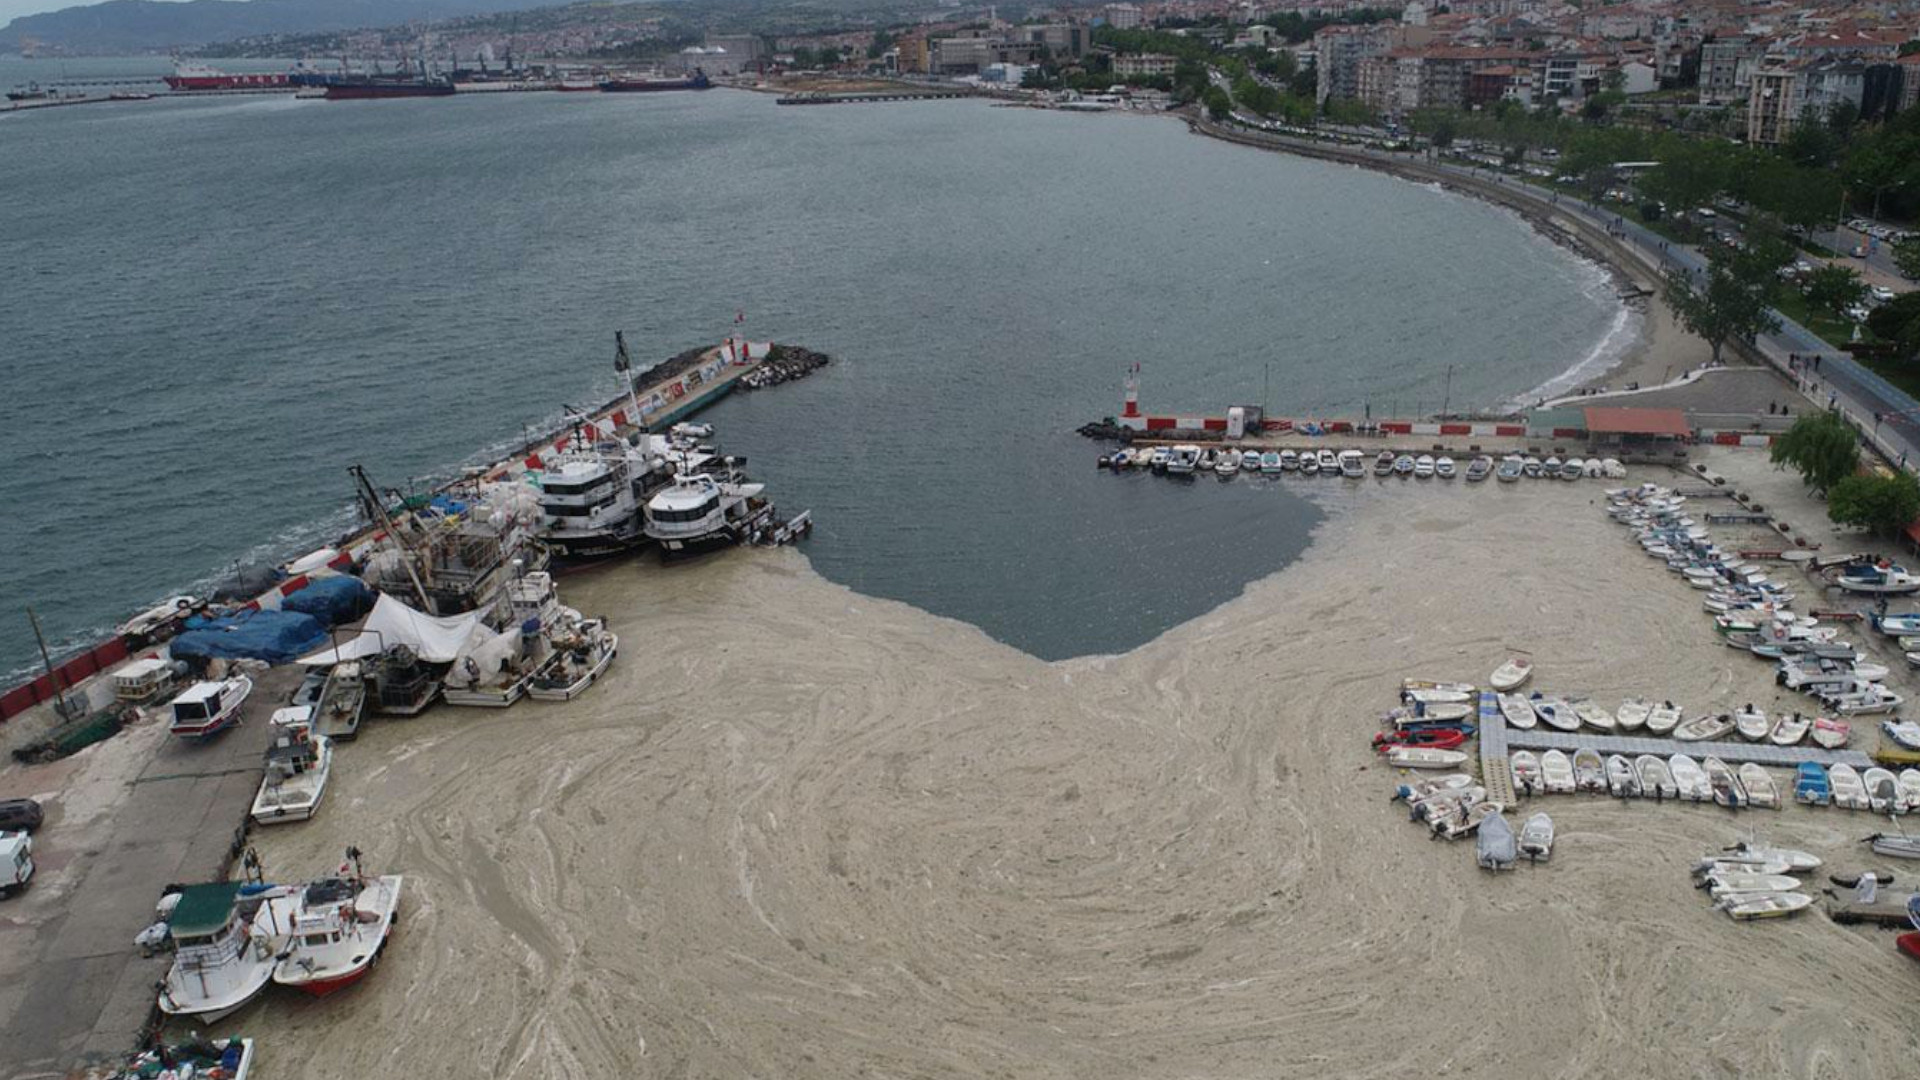 Turkey's seas are rotten, so is its political economy